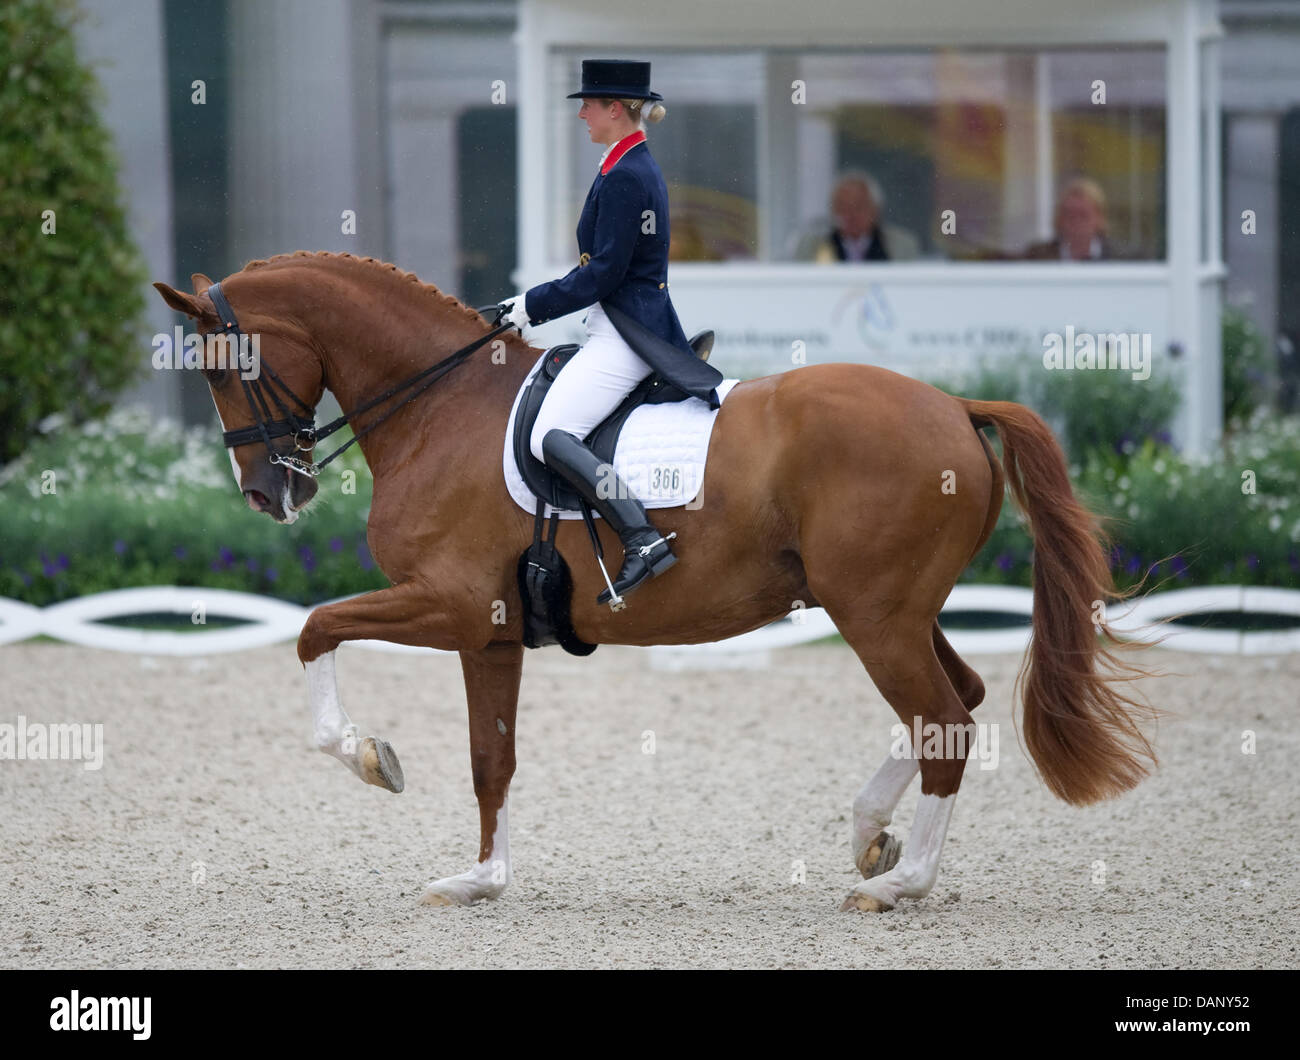 Britain's Laura Bechtolsheimer rides Hojris during the dressage riding at the CHIO in Aachen, Germany, 14 July - Stock Image